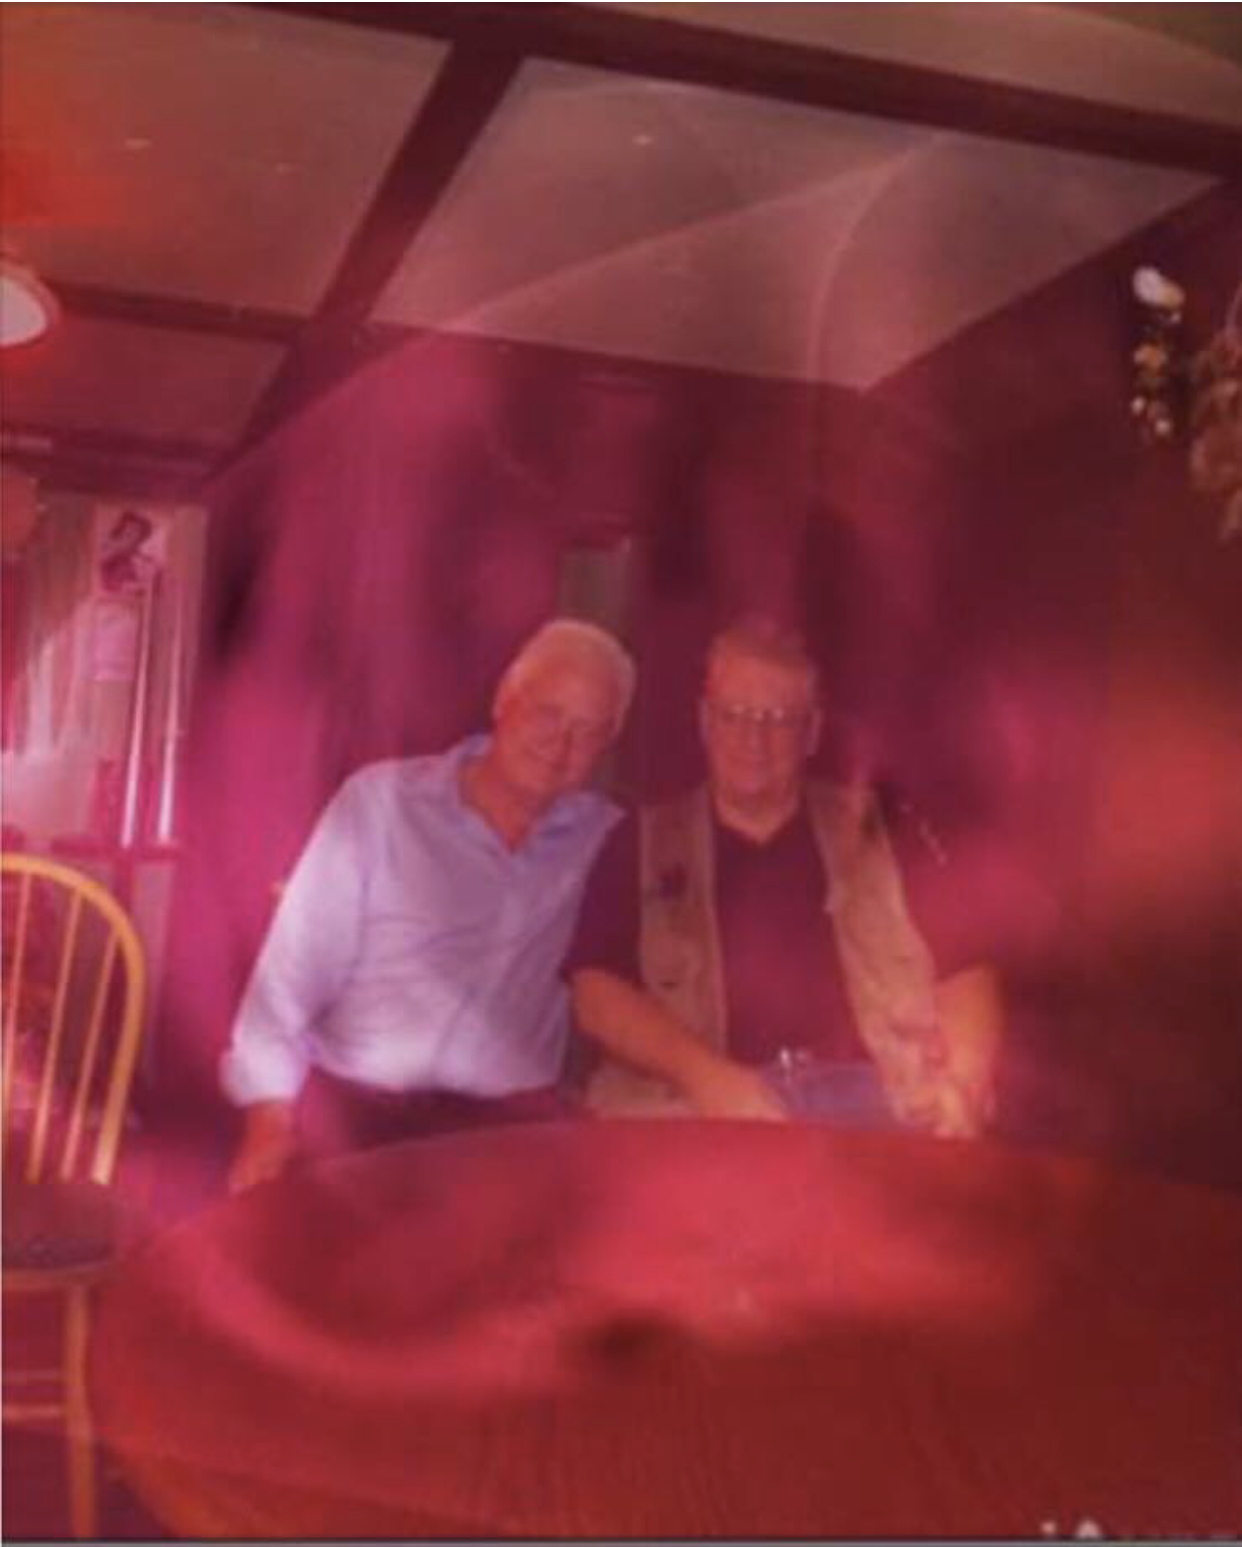 This is the most favorite picture I ever took.  iPhone used to have an app called iaura. we took photos of our séance peeps and gave them to each with their aura. Before and after a séance   This is Victor with Dennis from England. He was kind of like the good housekeeping seal of approval for mediums in England. He had a world renowned magazine. after he sat with you and liked your séance, he would refer You to his magazine subscribers. But if you understand,  look closely at the photo and you'll see the ascended masters in the photo also! it is amazing!